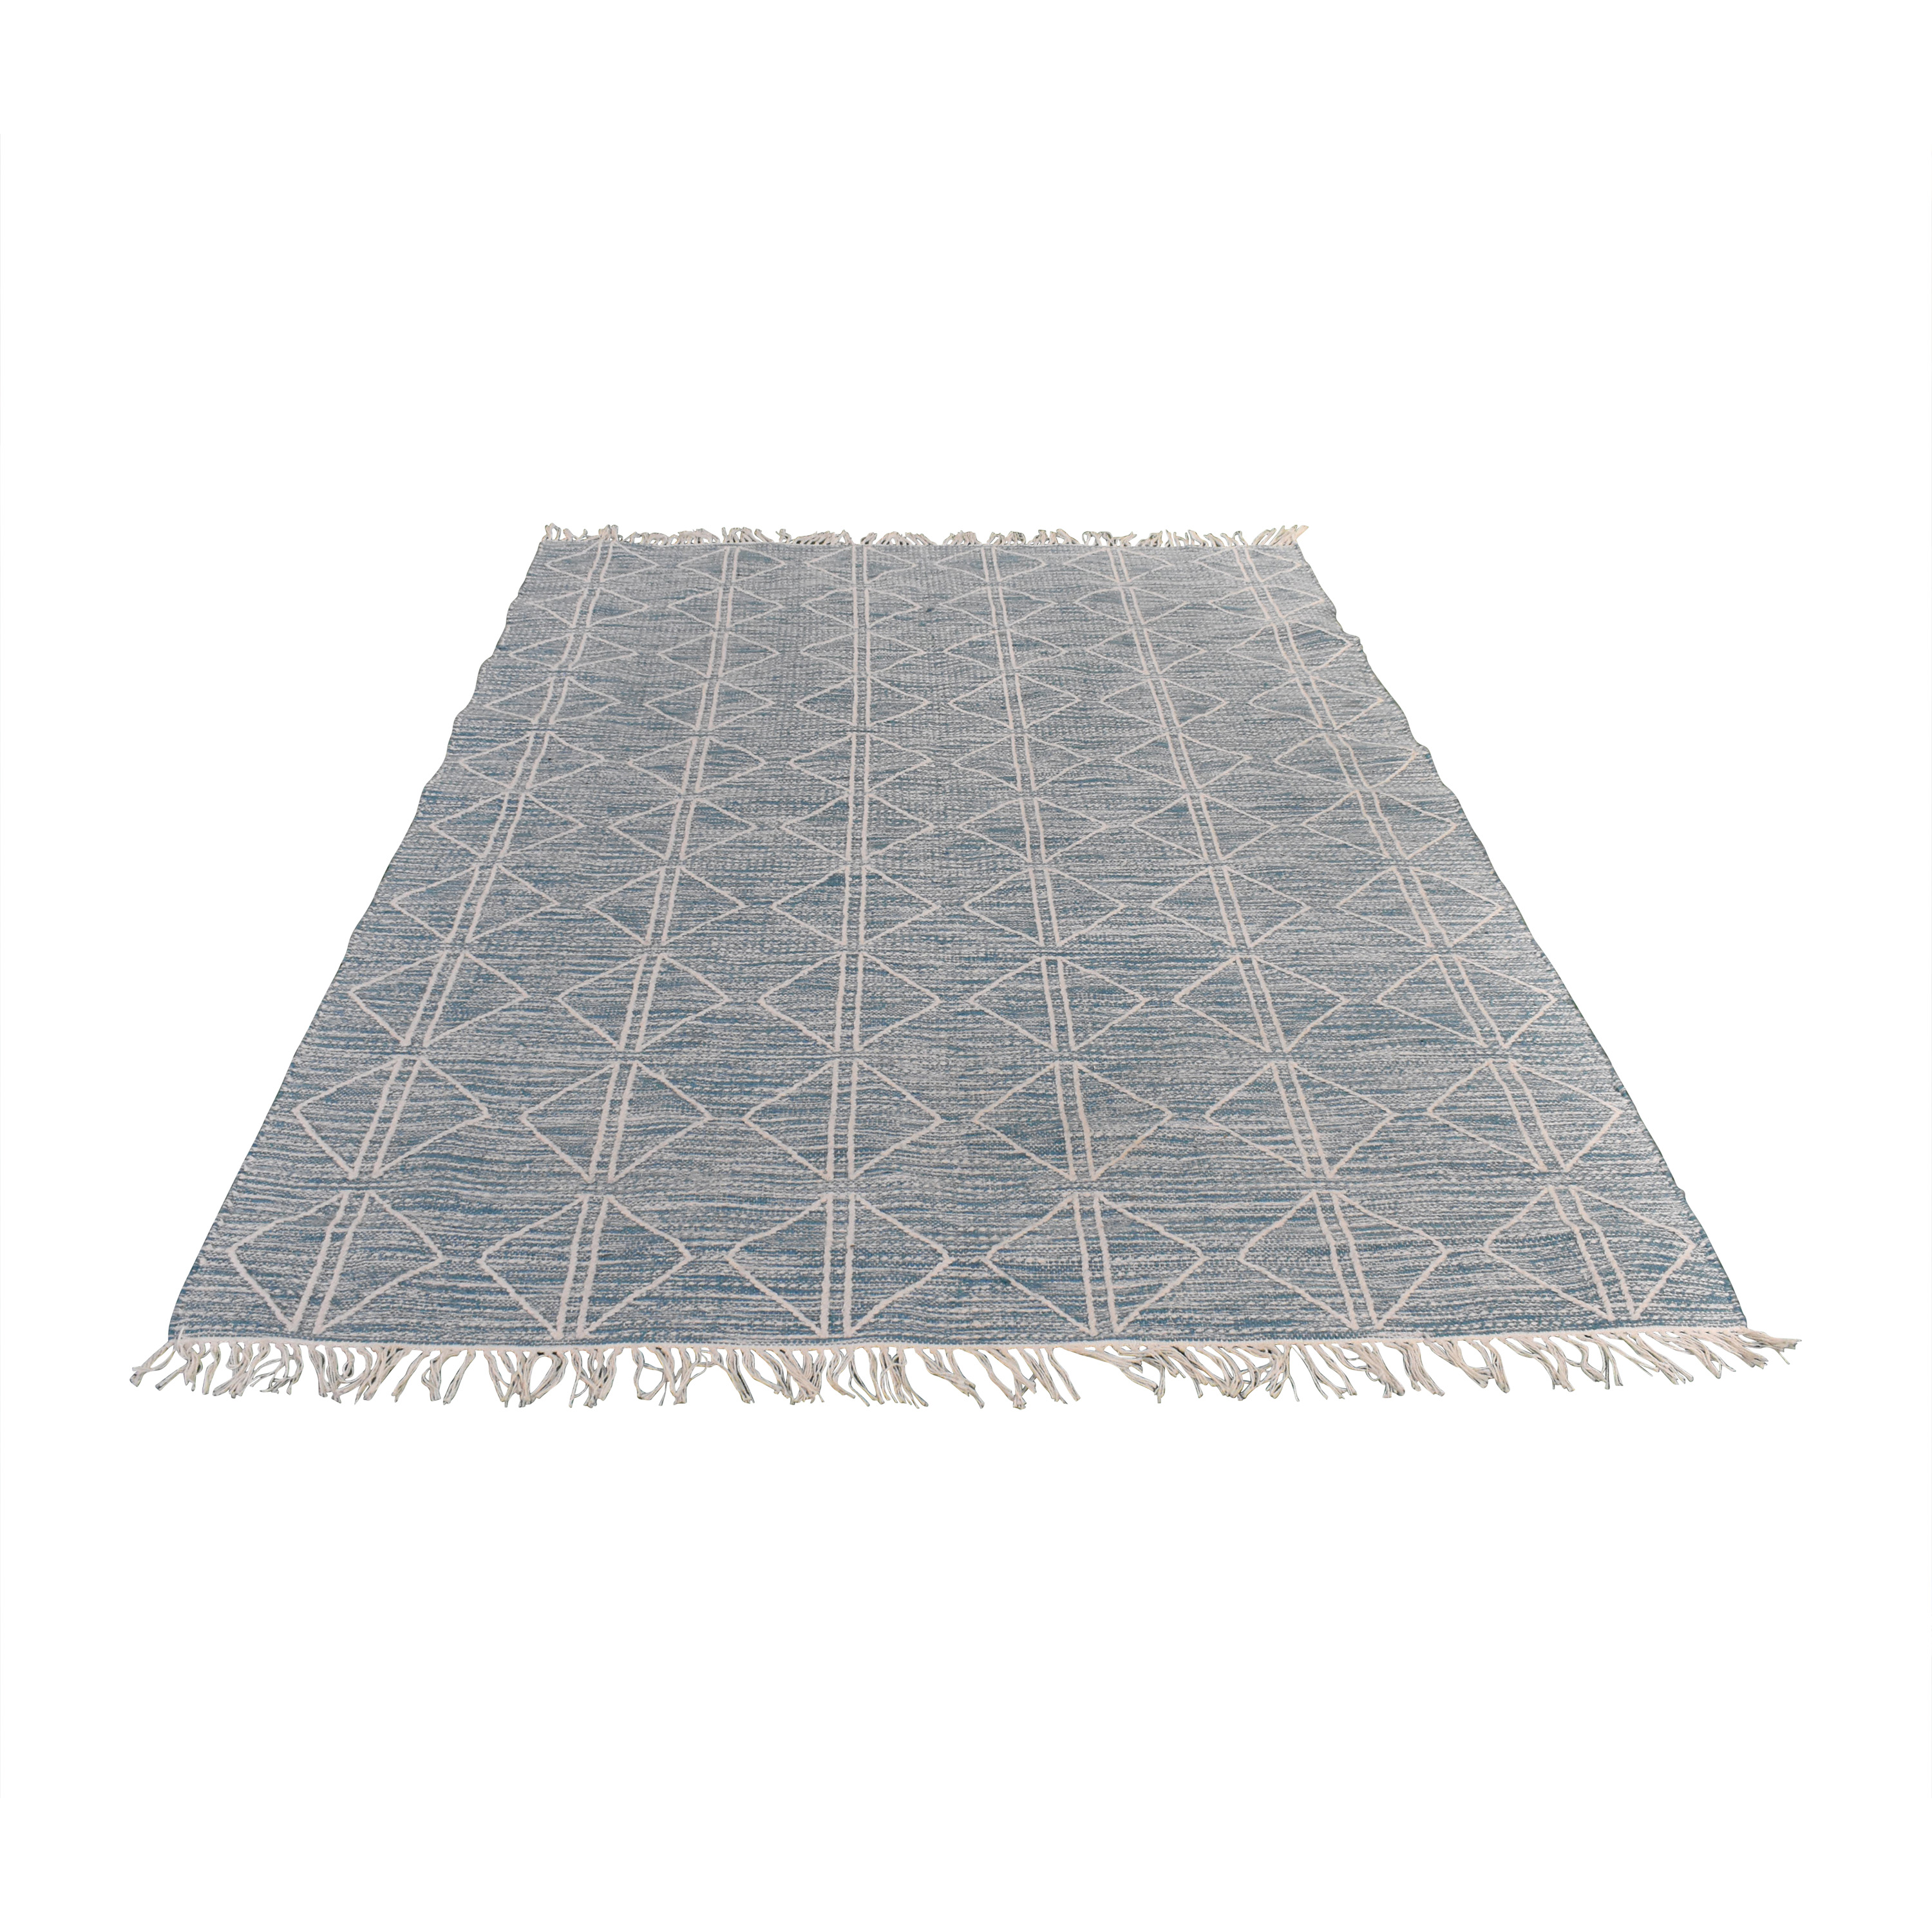 buy West Elm Reflected Diamonds Area Rug West Elm Rugs